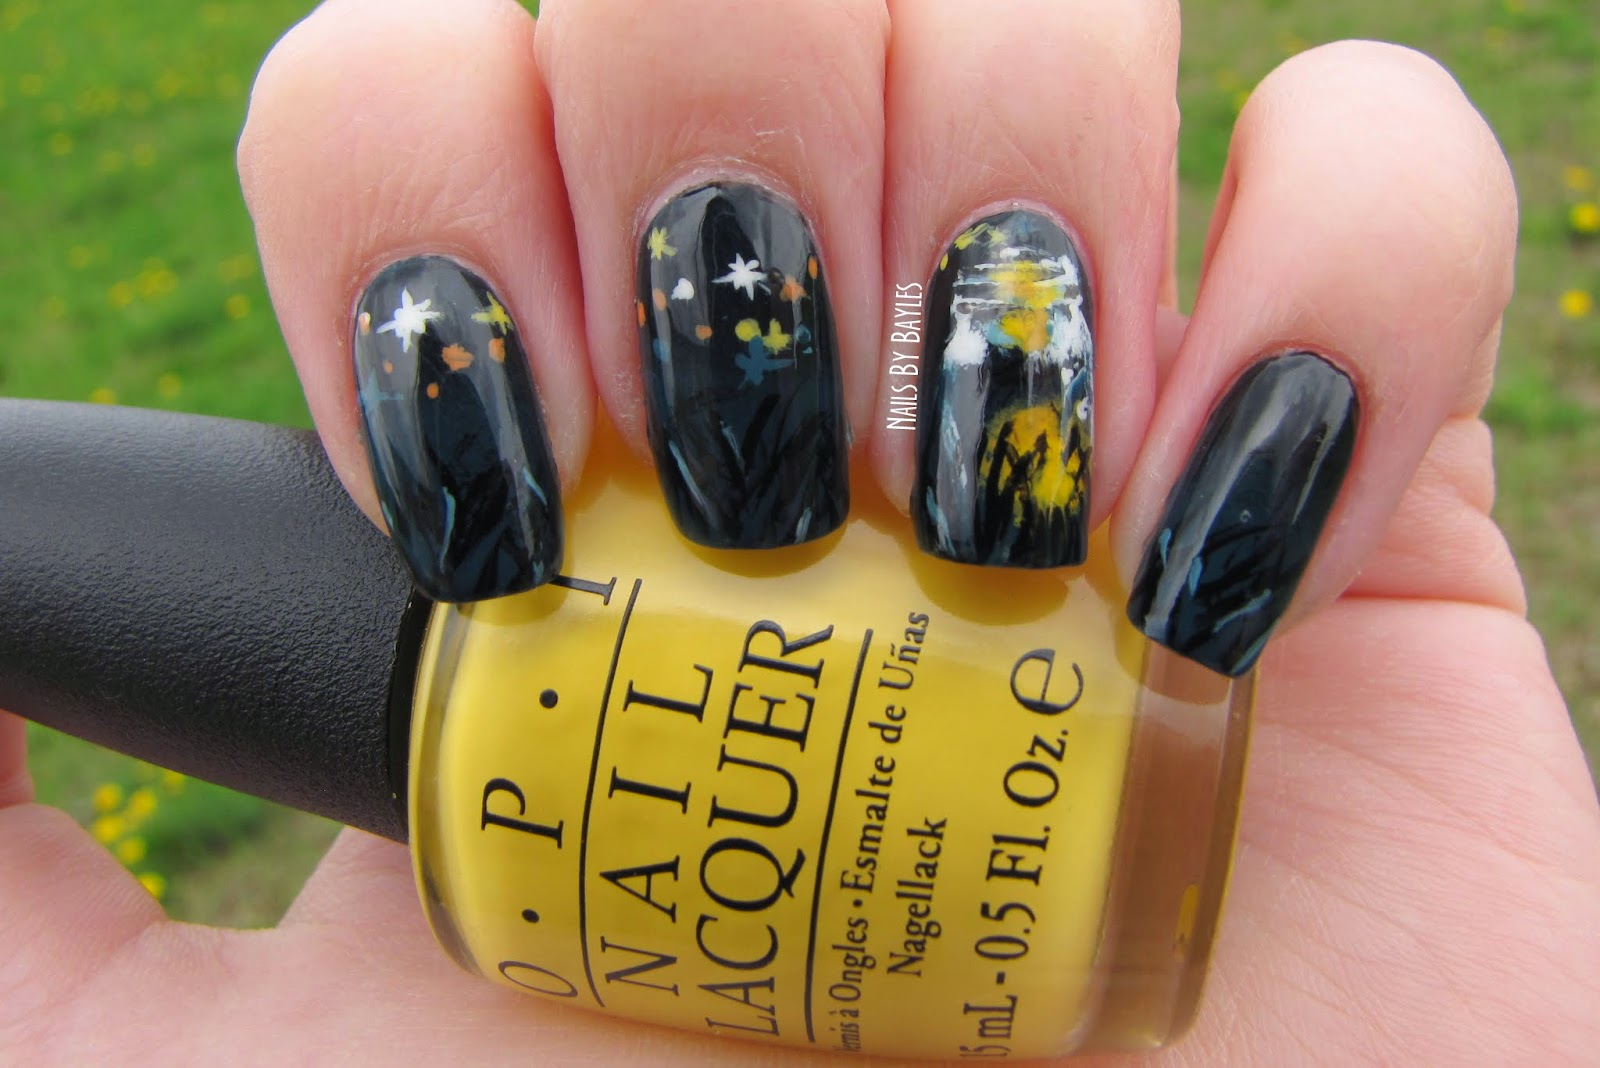 Nails By Bayles: Firefly Nail Art